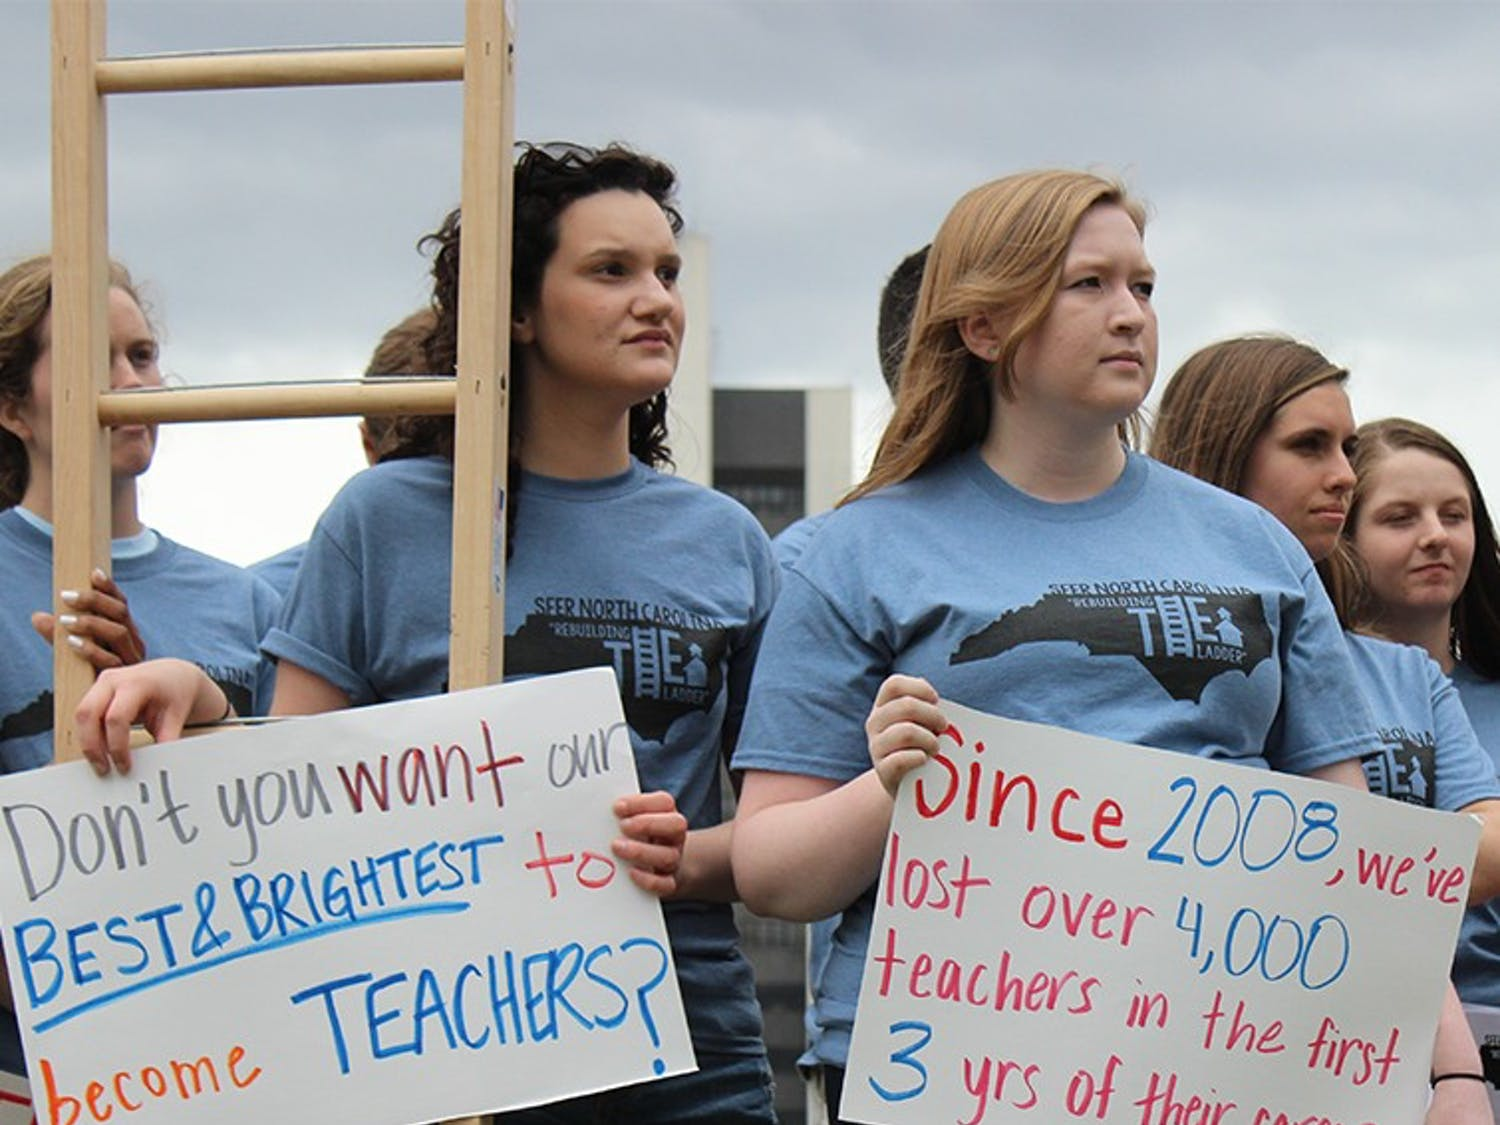 Students for Education Reform gathered outside of the General Assembly Building in Raleigh in 2014, calling for a raise in wages for teachers and a new respect for the job. SFER consists of college students from all over the state, including Duke, East Carolina, UNC-CH, and Wake Forest.